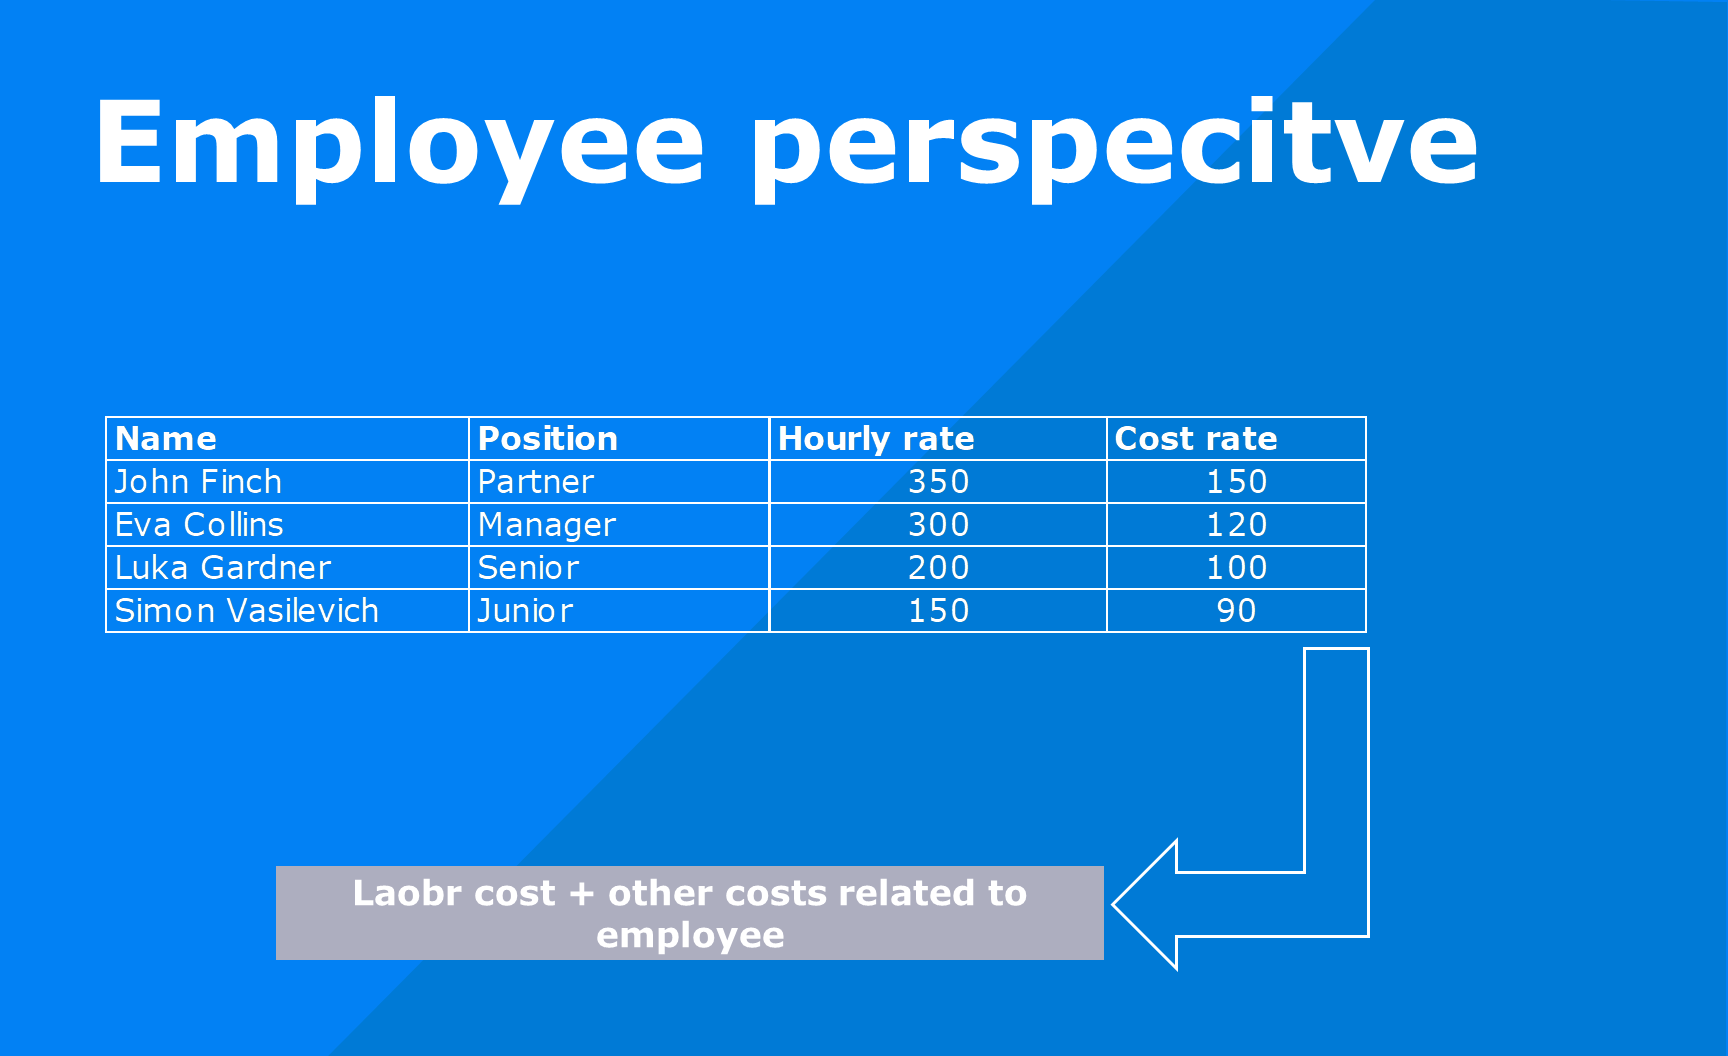 hourly and cost rate per employee